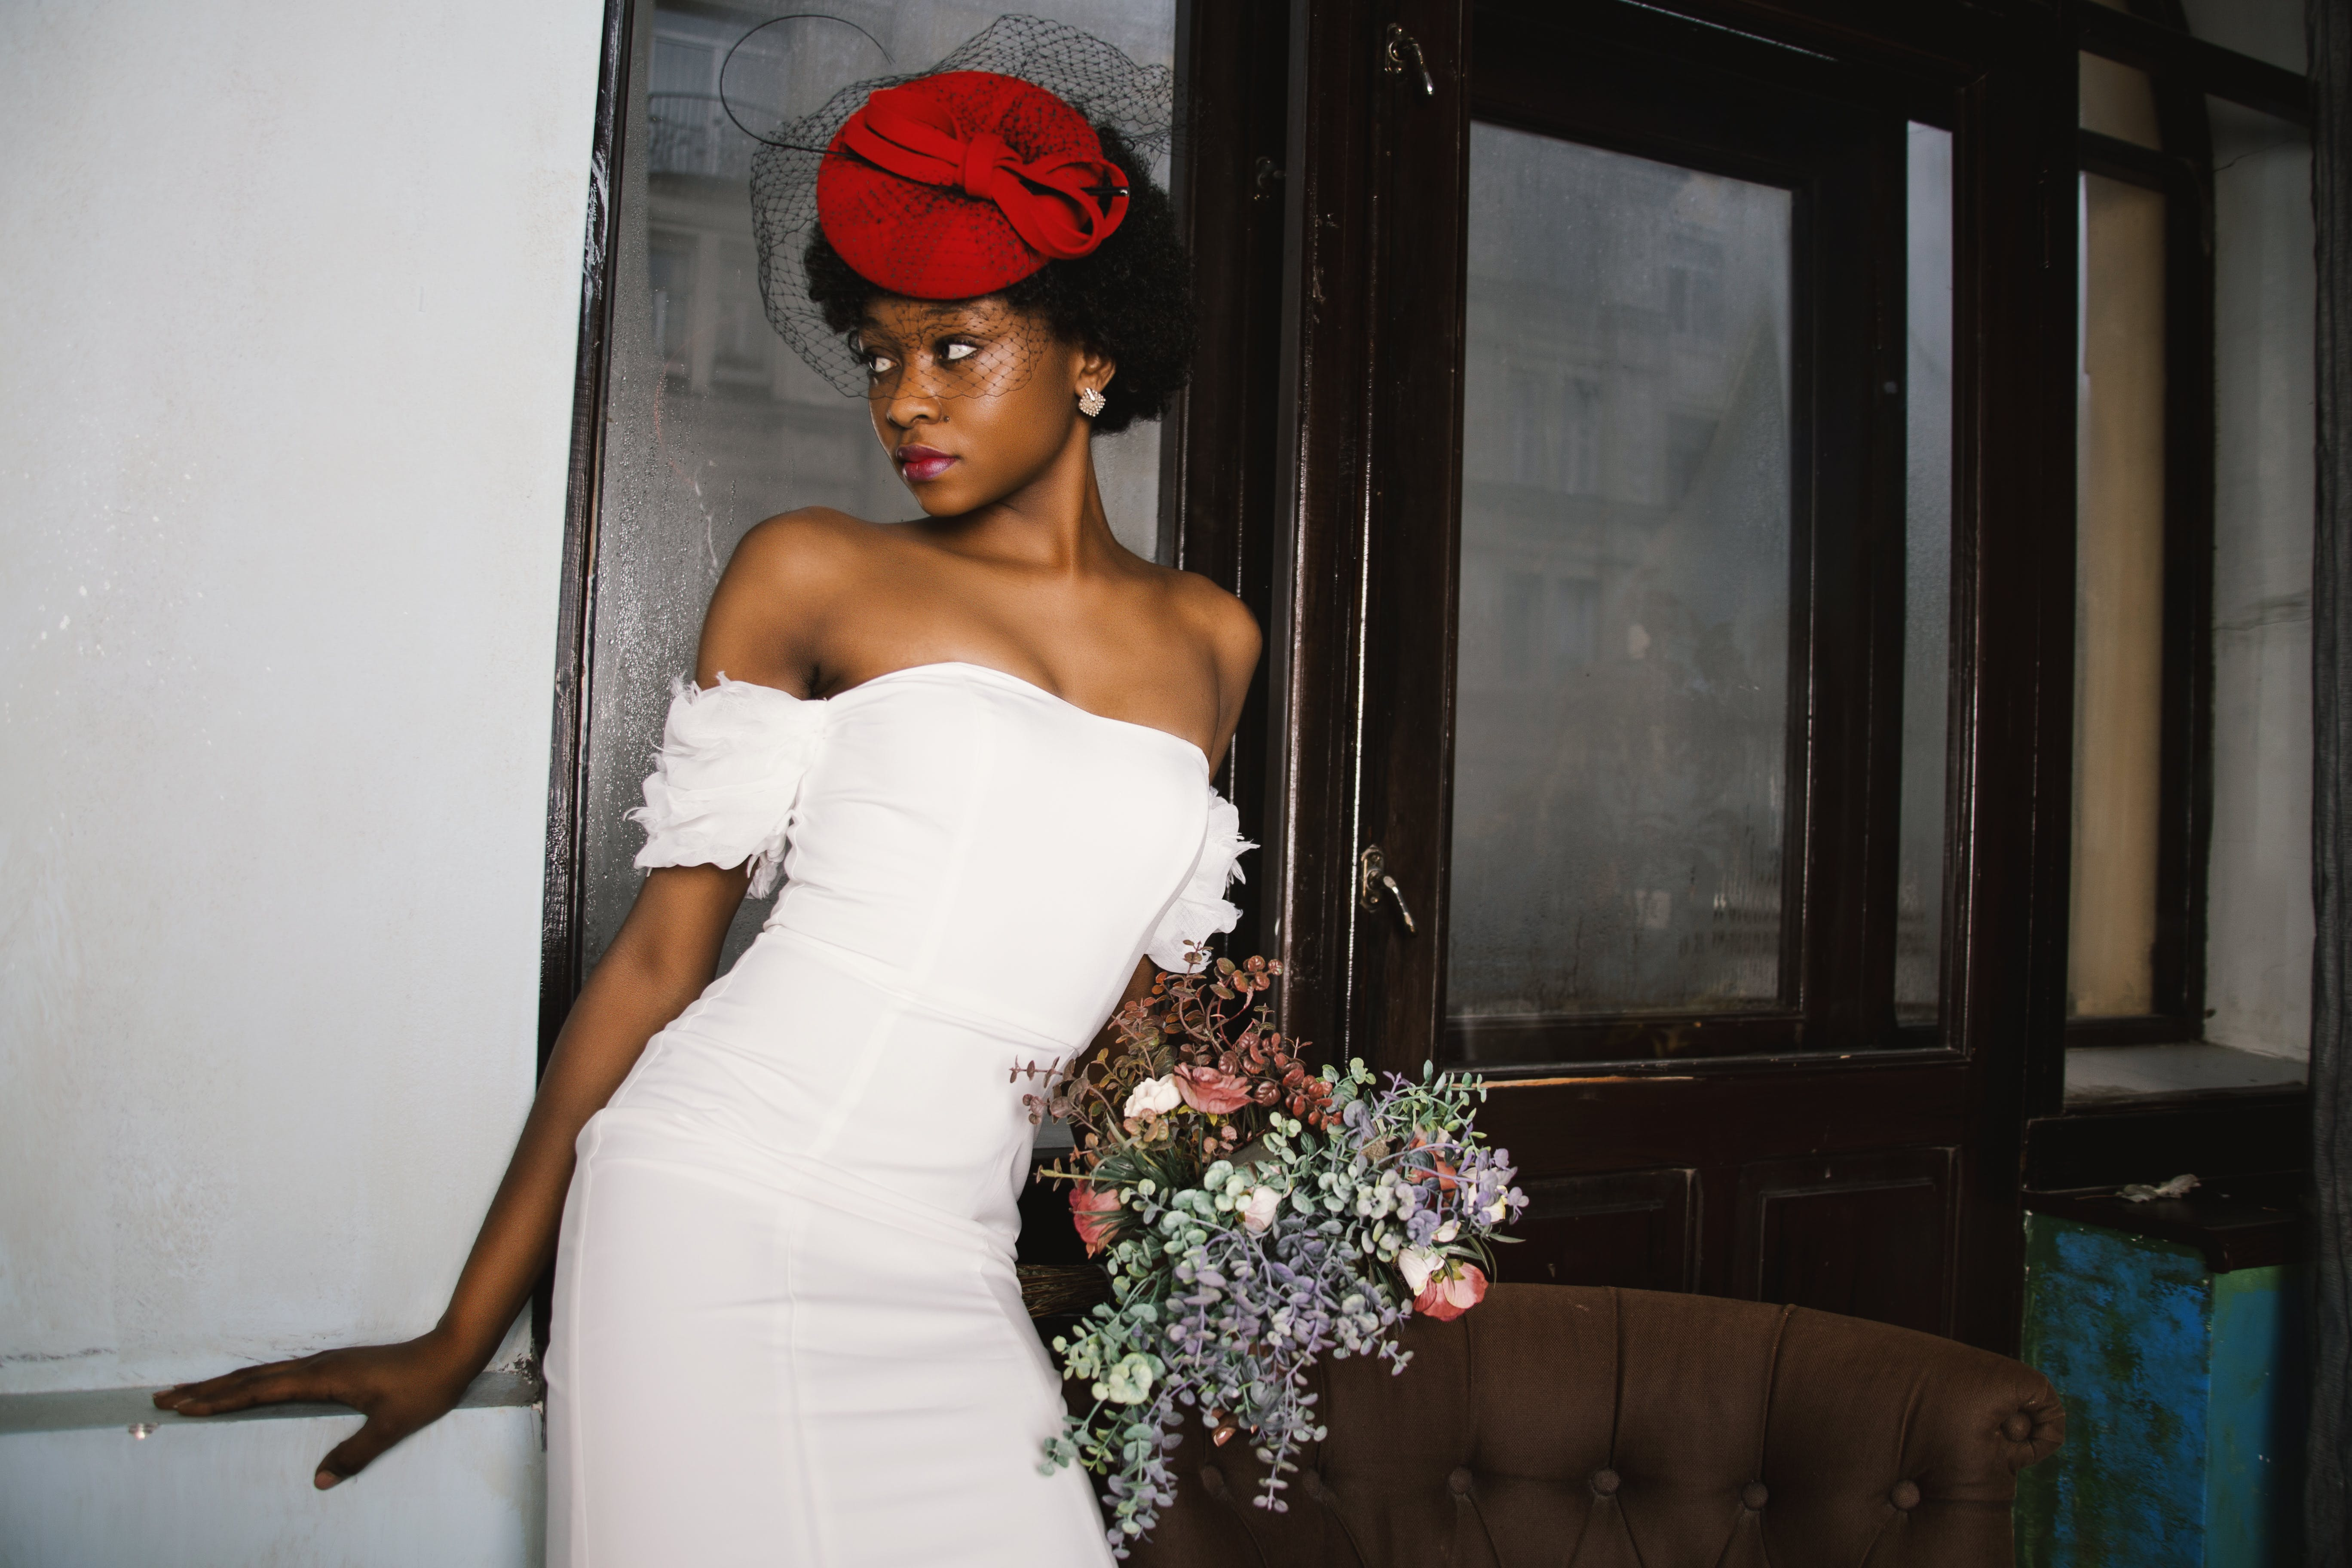 Woman in White Off-shoulder Dress Holding Bouquet